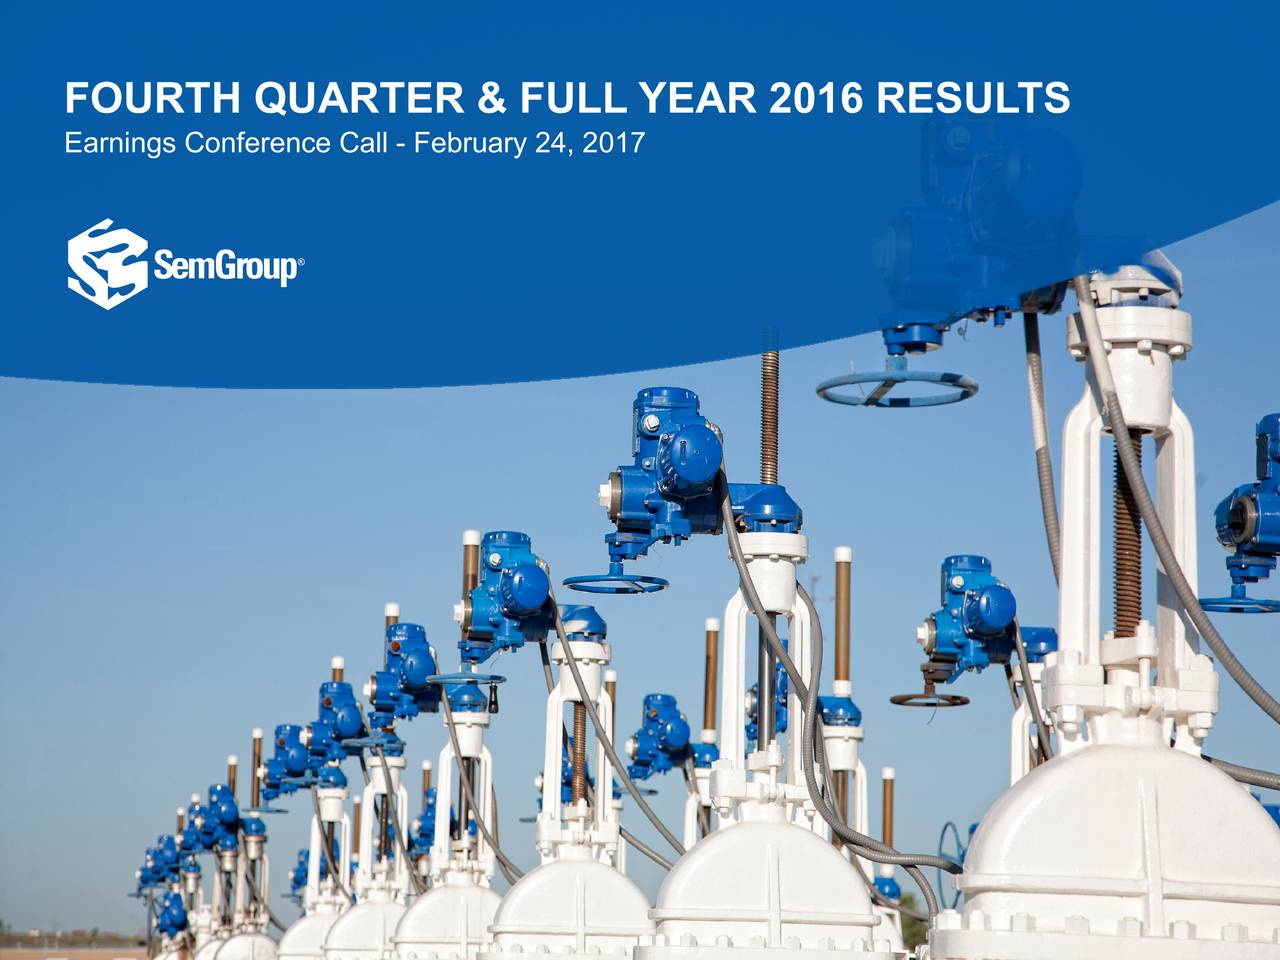 Earnings Conference Call - February 24, 2017